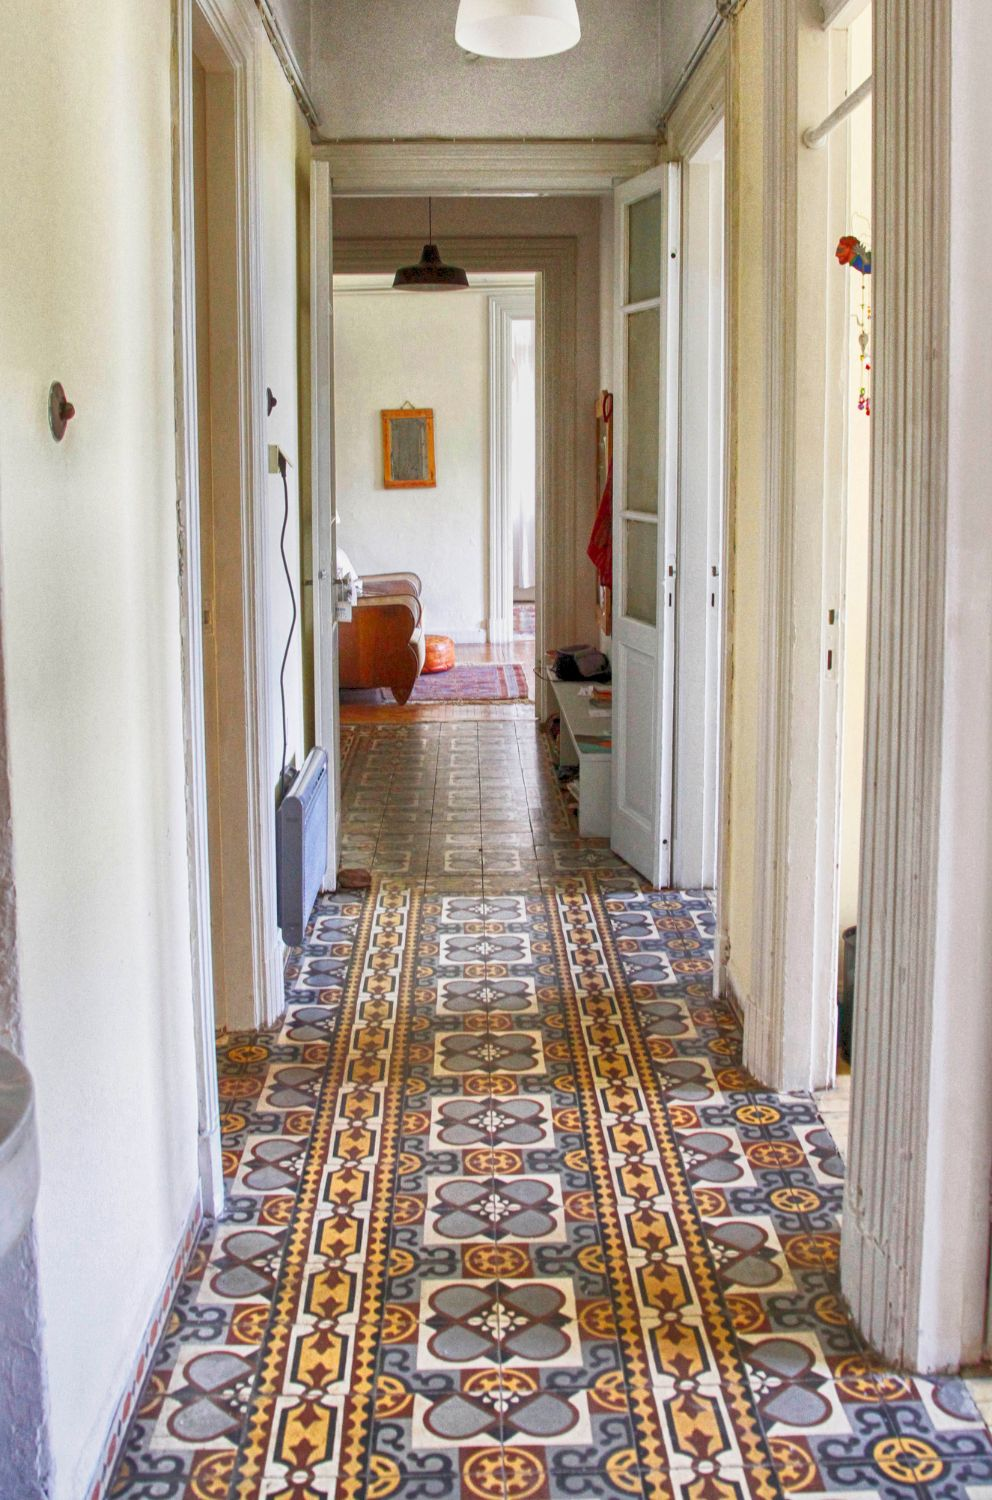 Hallway to the living rooms